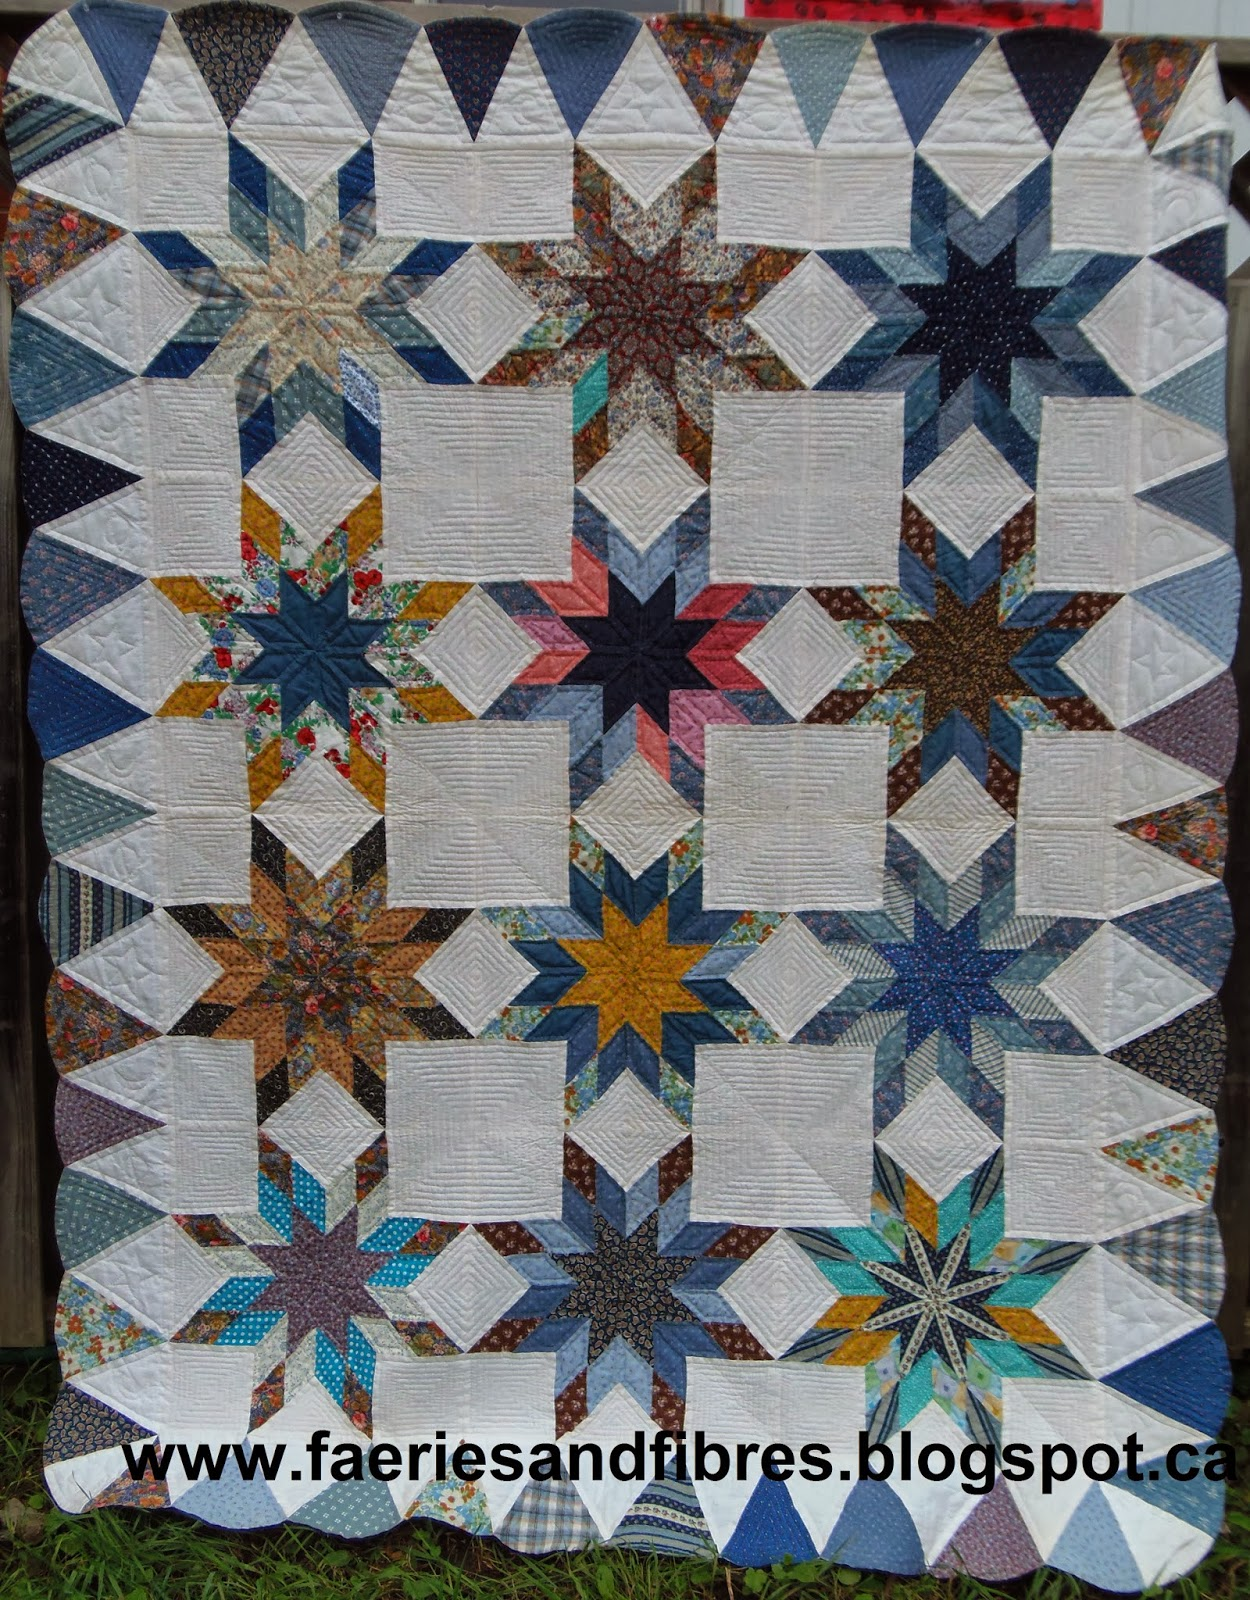 Faeries And Fibres Gallery Of Completed Quilts